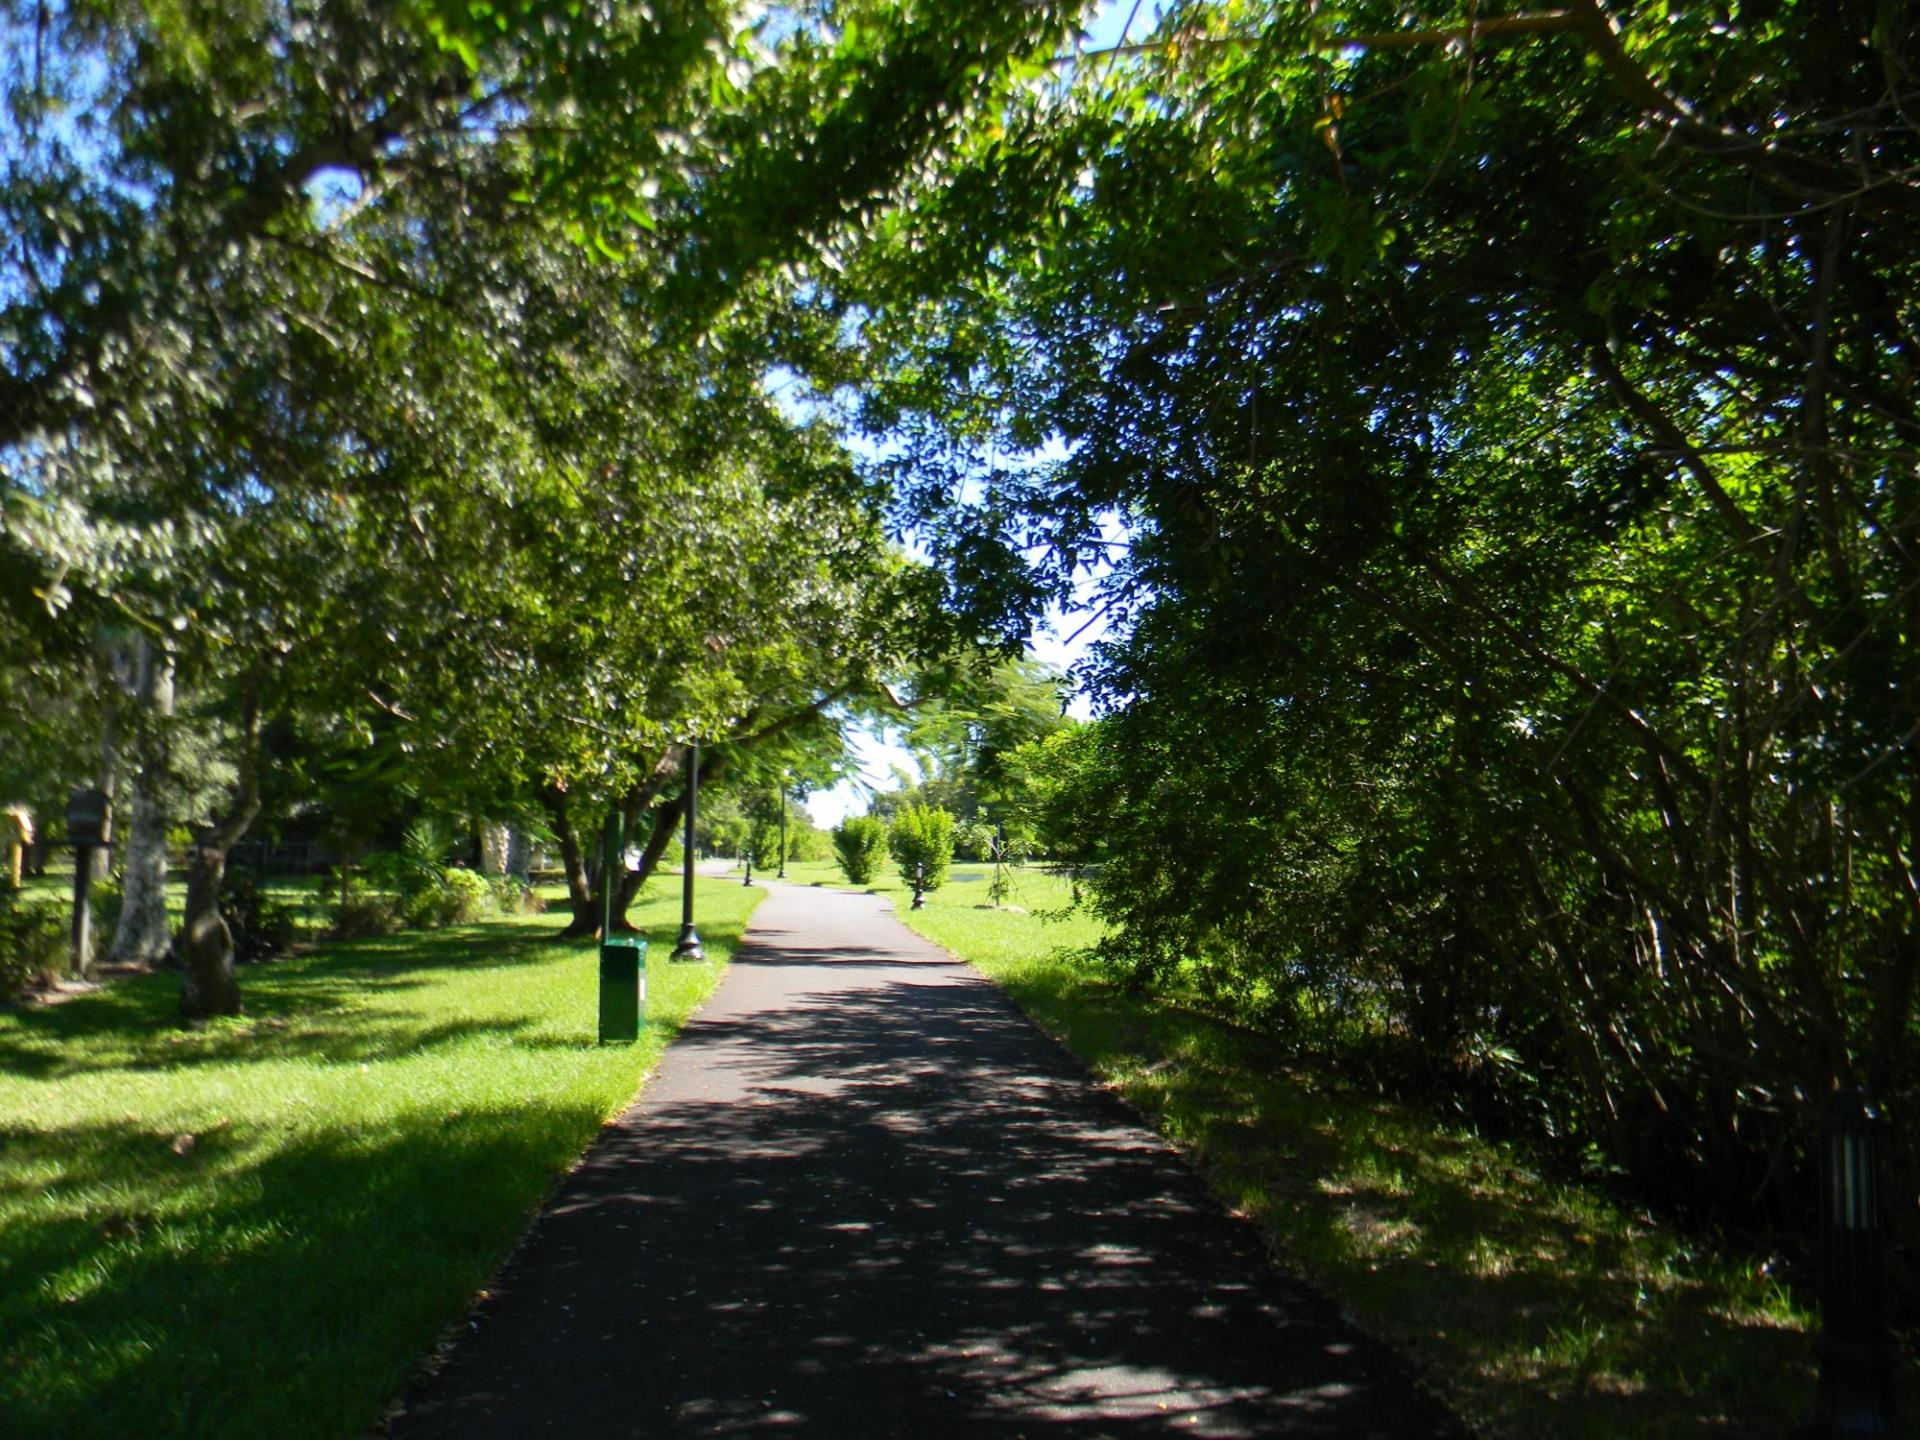 picture of the linear park path shaded by trees